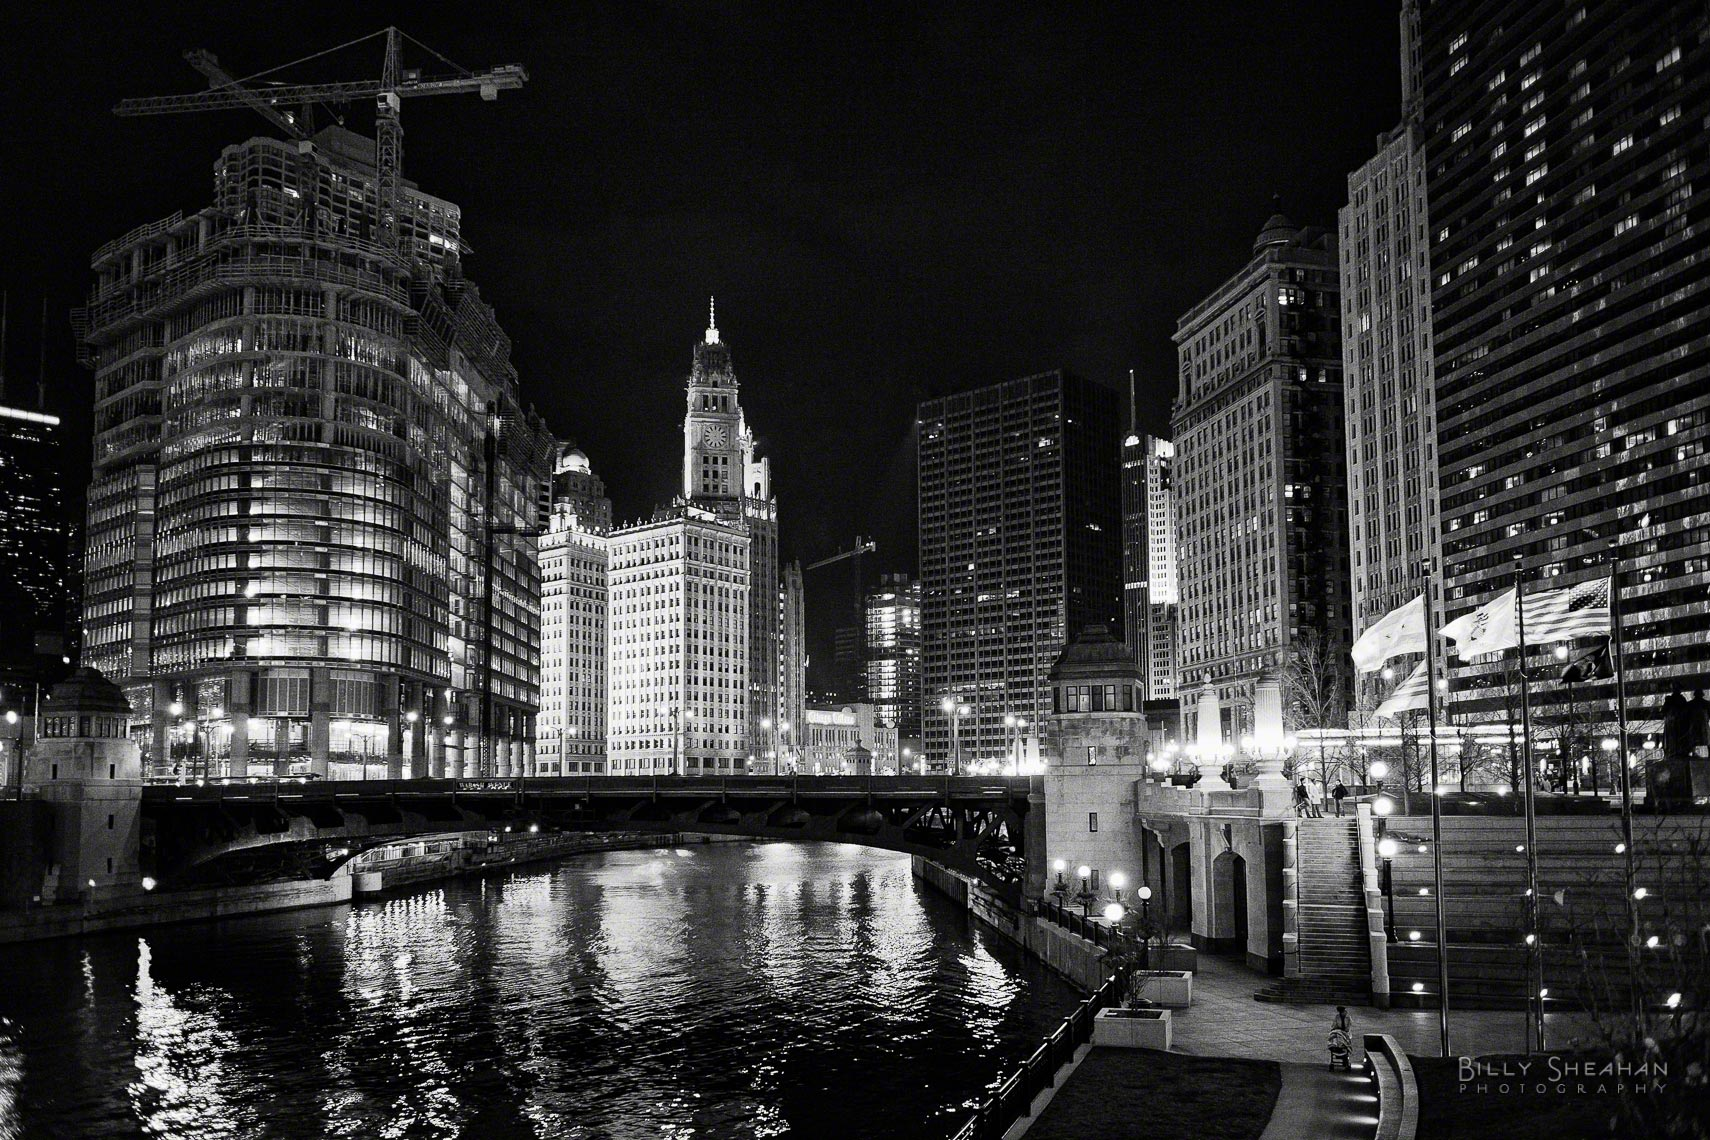 Trump_Tower_Construction_Wabash_St_Bridge_Chicago_26Nov2006_115_BW_D.jpg